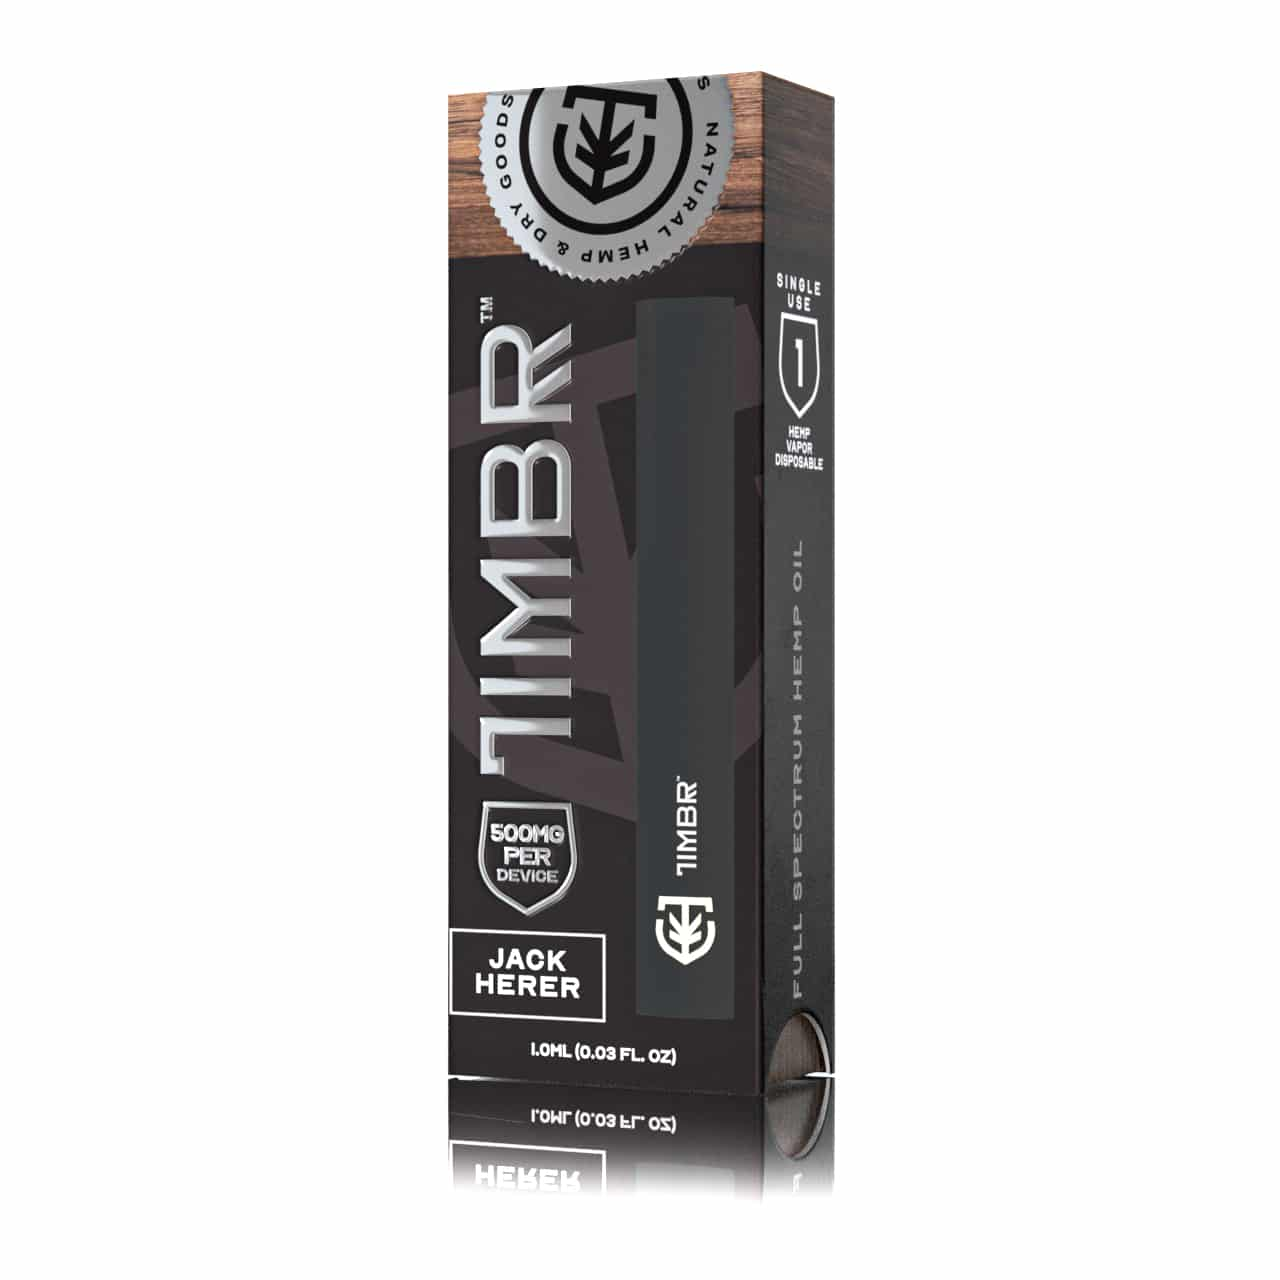 TIMBR Jack Herer Disposable CBD Vape Pen - 500mg Full Spectrum CBD - 150 Puffs